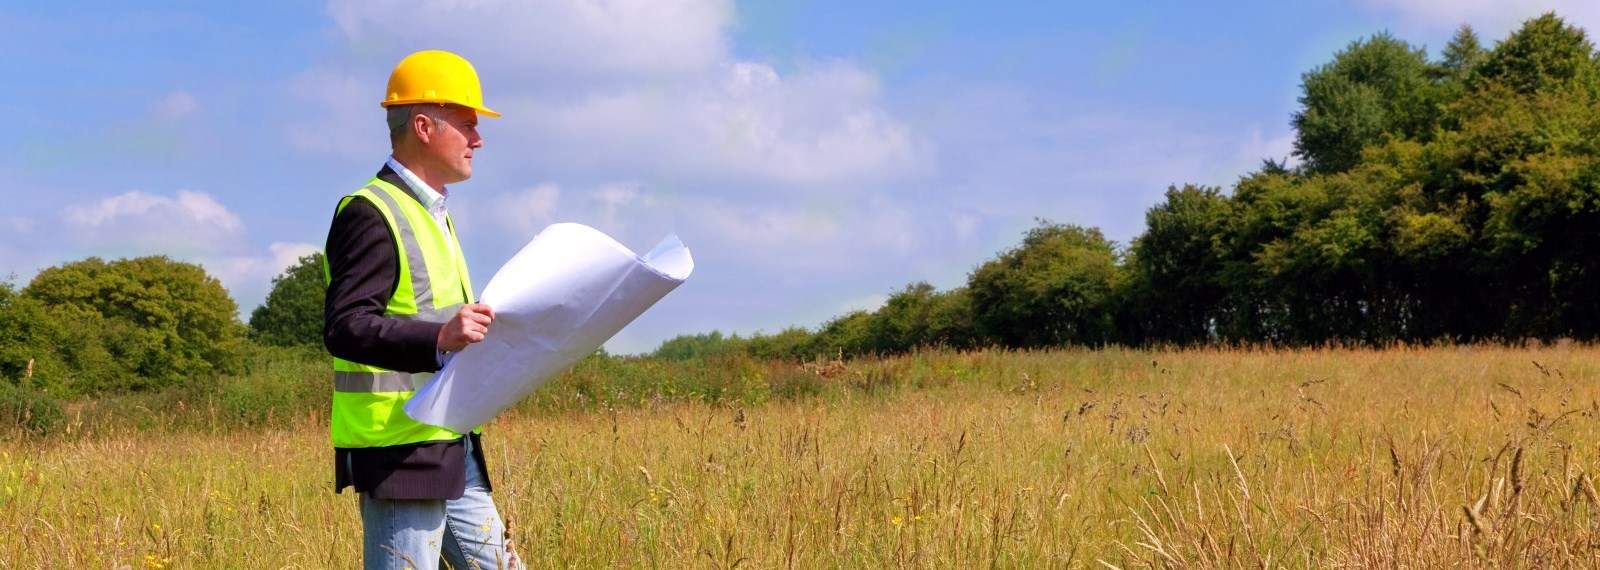 man reading planning document in a field